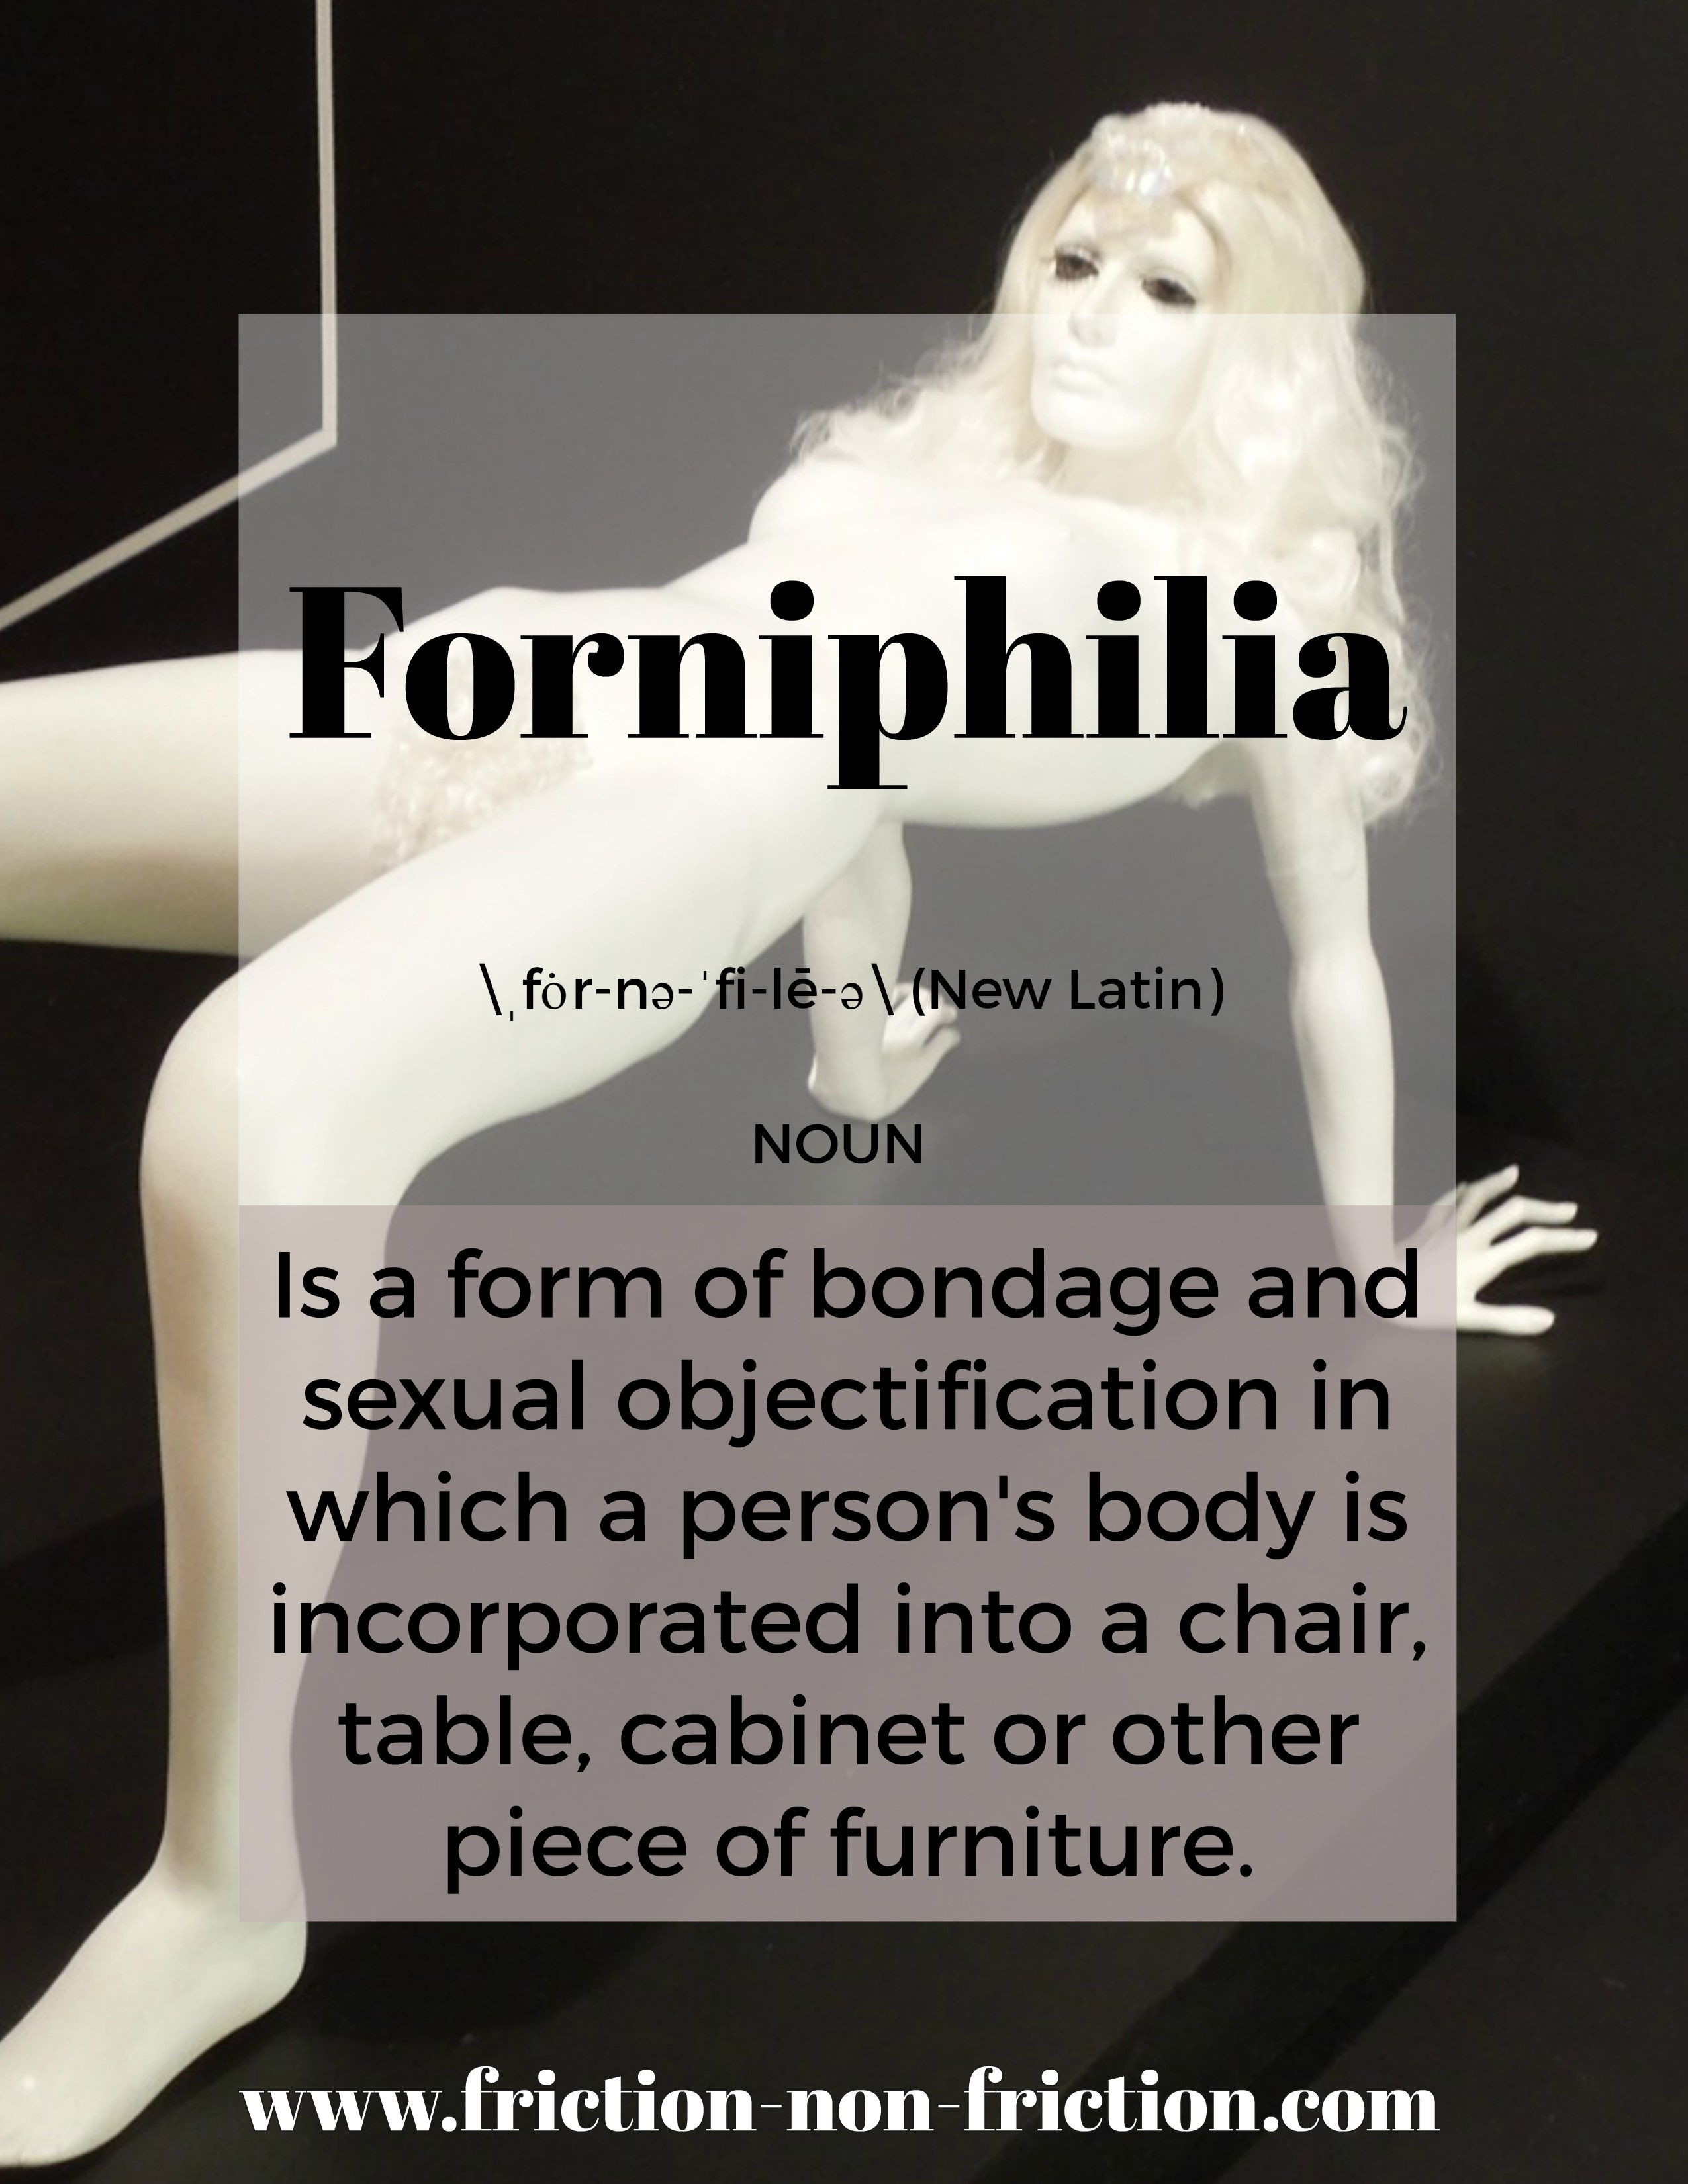 Forniphilia -- another great FRICTIONARY definition from Friction non Friction